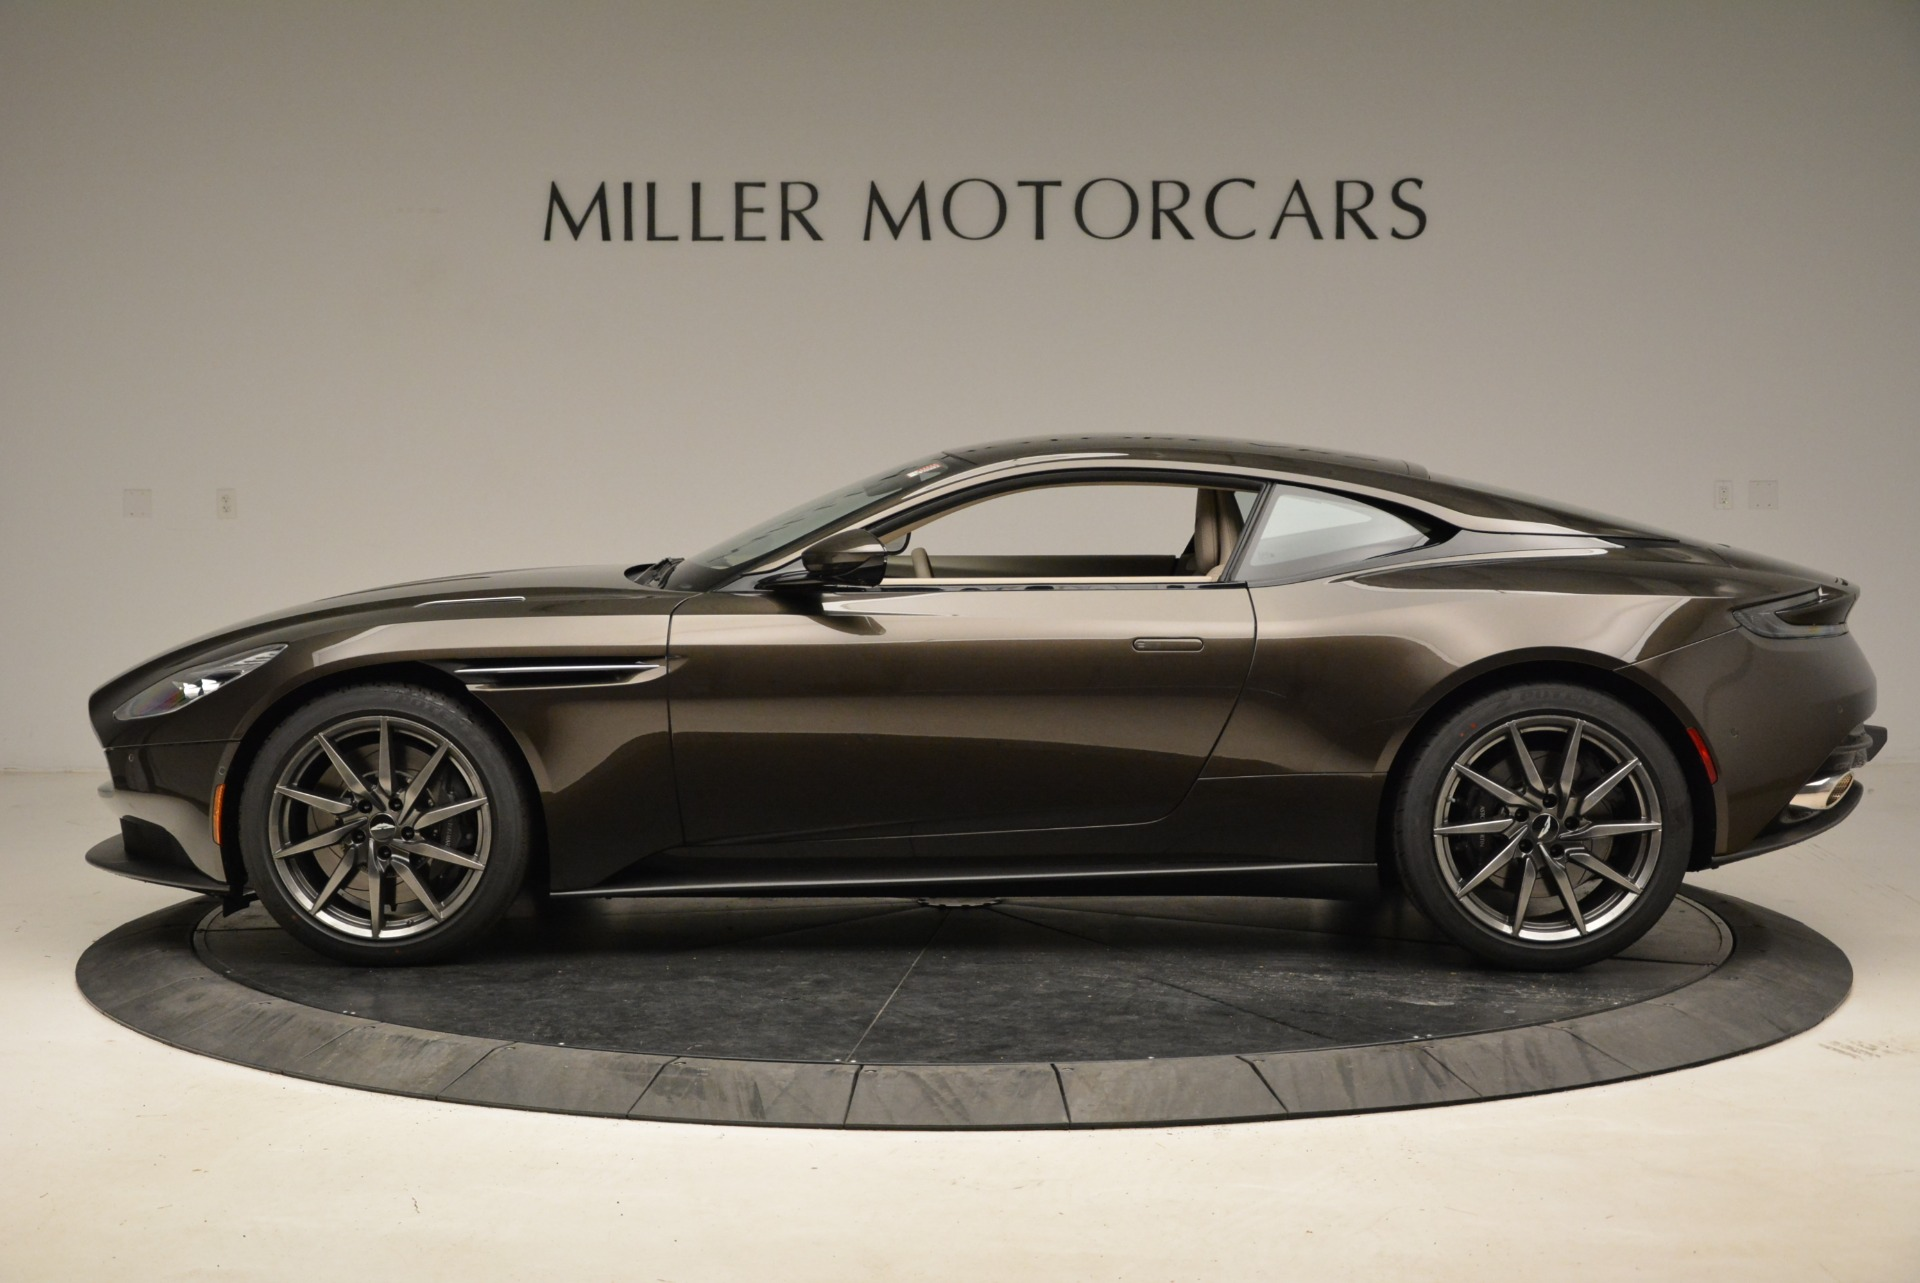 New 2018 Aston Martin DB11 V12 For Sale In Westport, CT 1904_p3